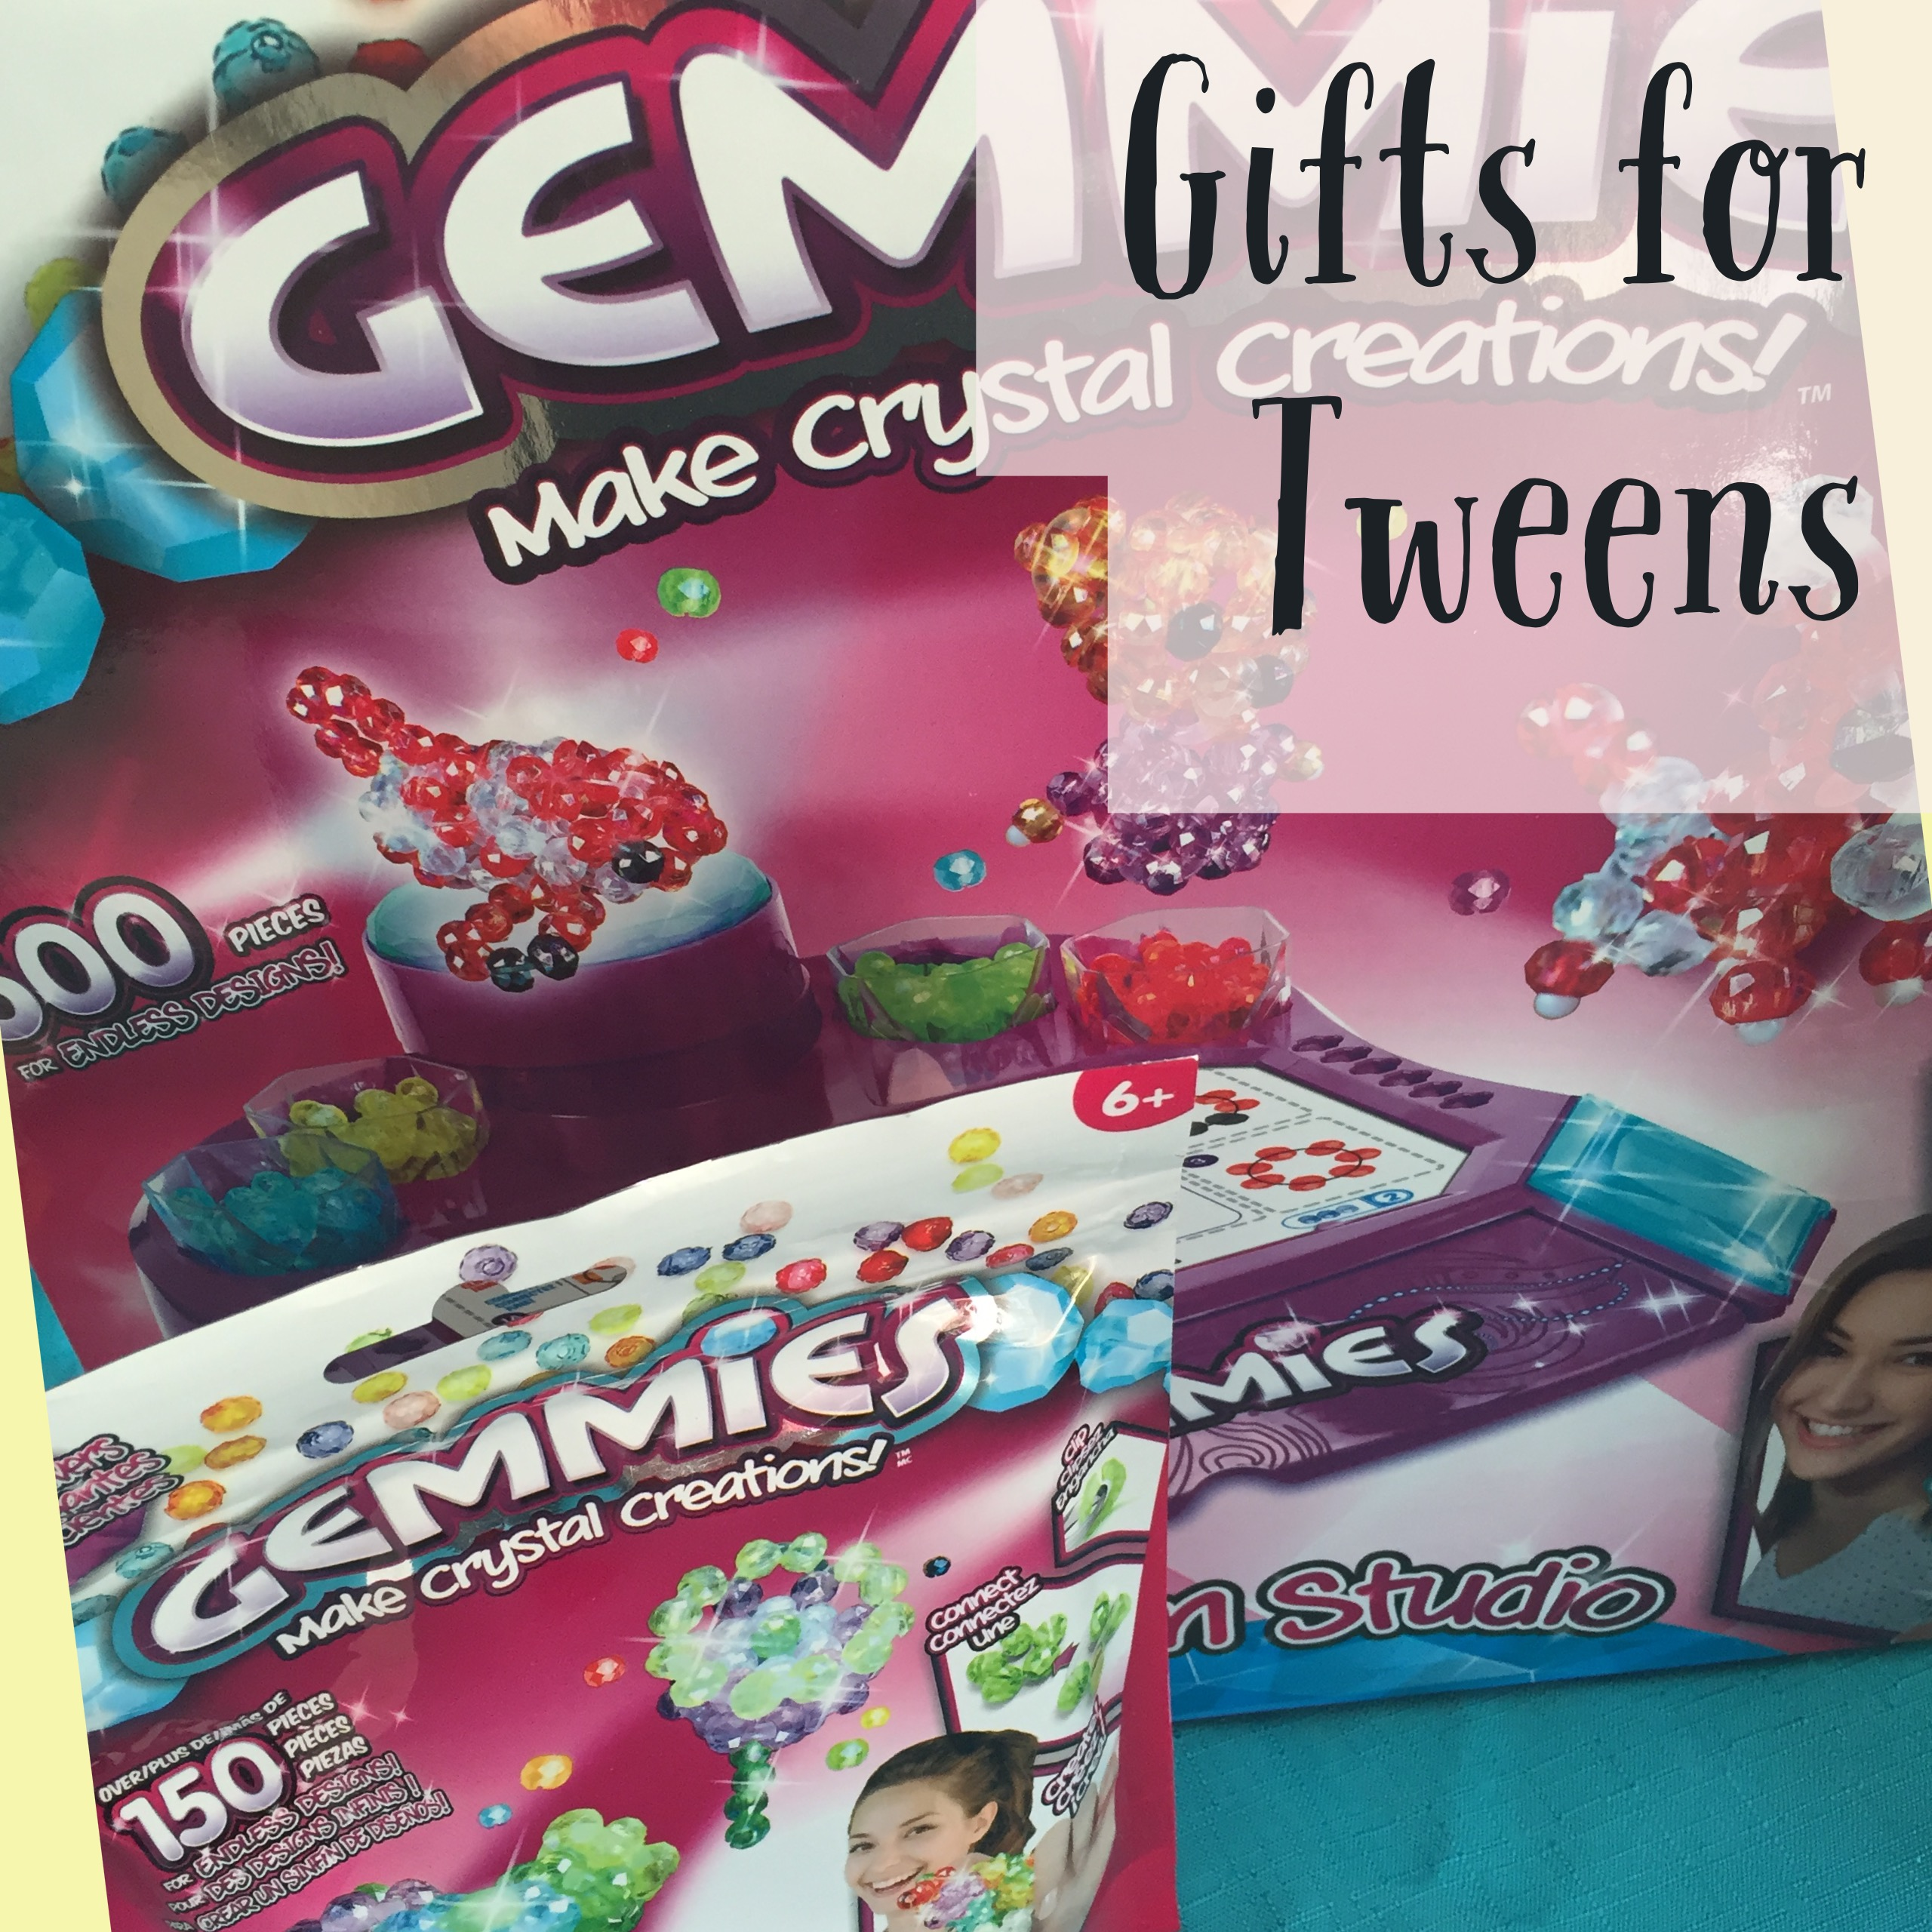 Gemmies Crystal Creations Thrifty Momma S Tips